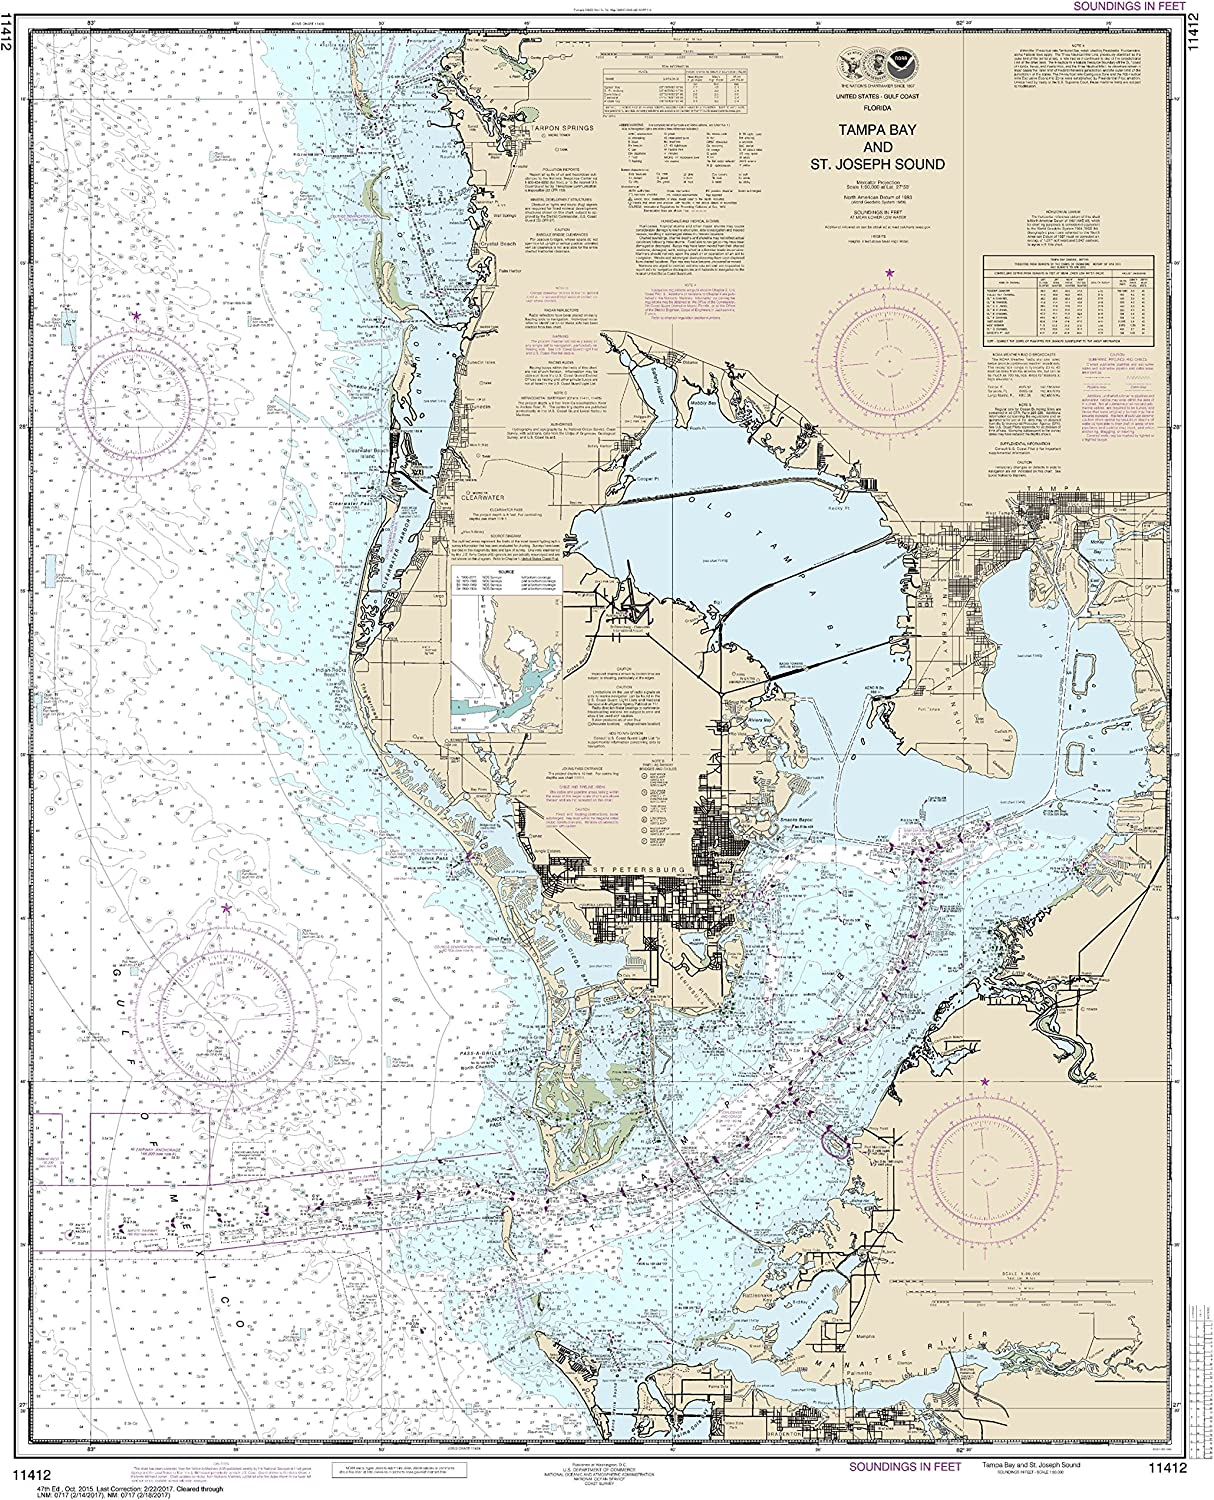 Amazon Com Noaa Chart 11412 Tampa Bay And St Joseph Sound 41 91 X 33 75 Matte Plastic Map Sports Outdoors Map of tampa area hotels: noaa chart 11412 tampa bay and